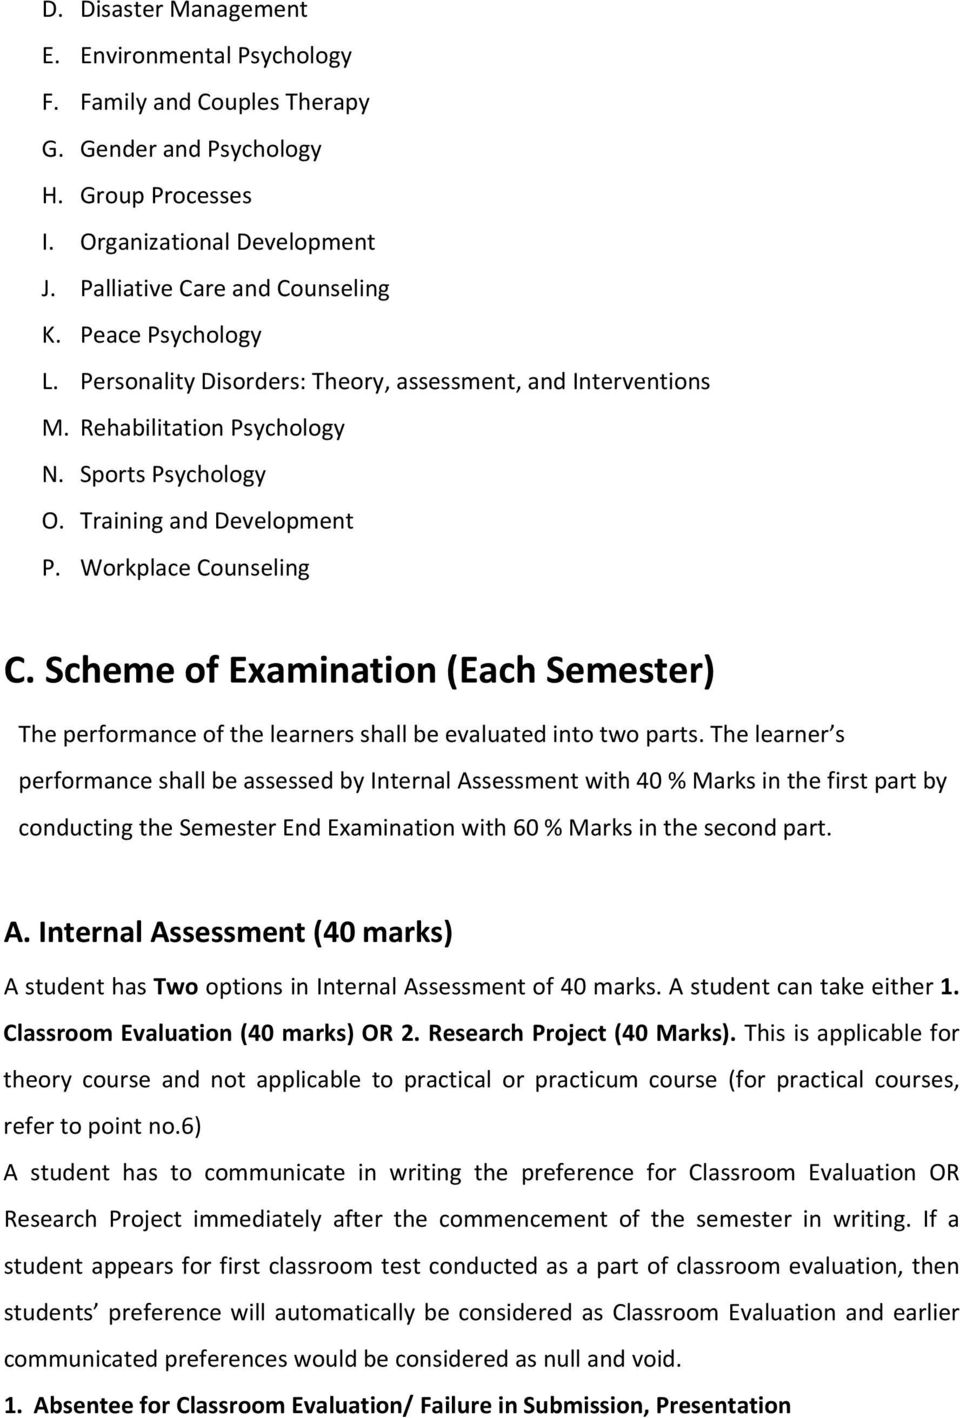 Scheme of Examination (Each Semester) The performance of the learners shall be evaluated into two parts.